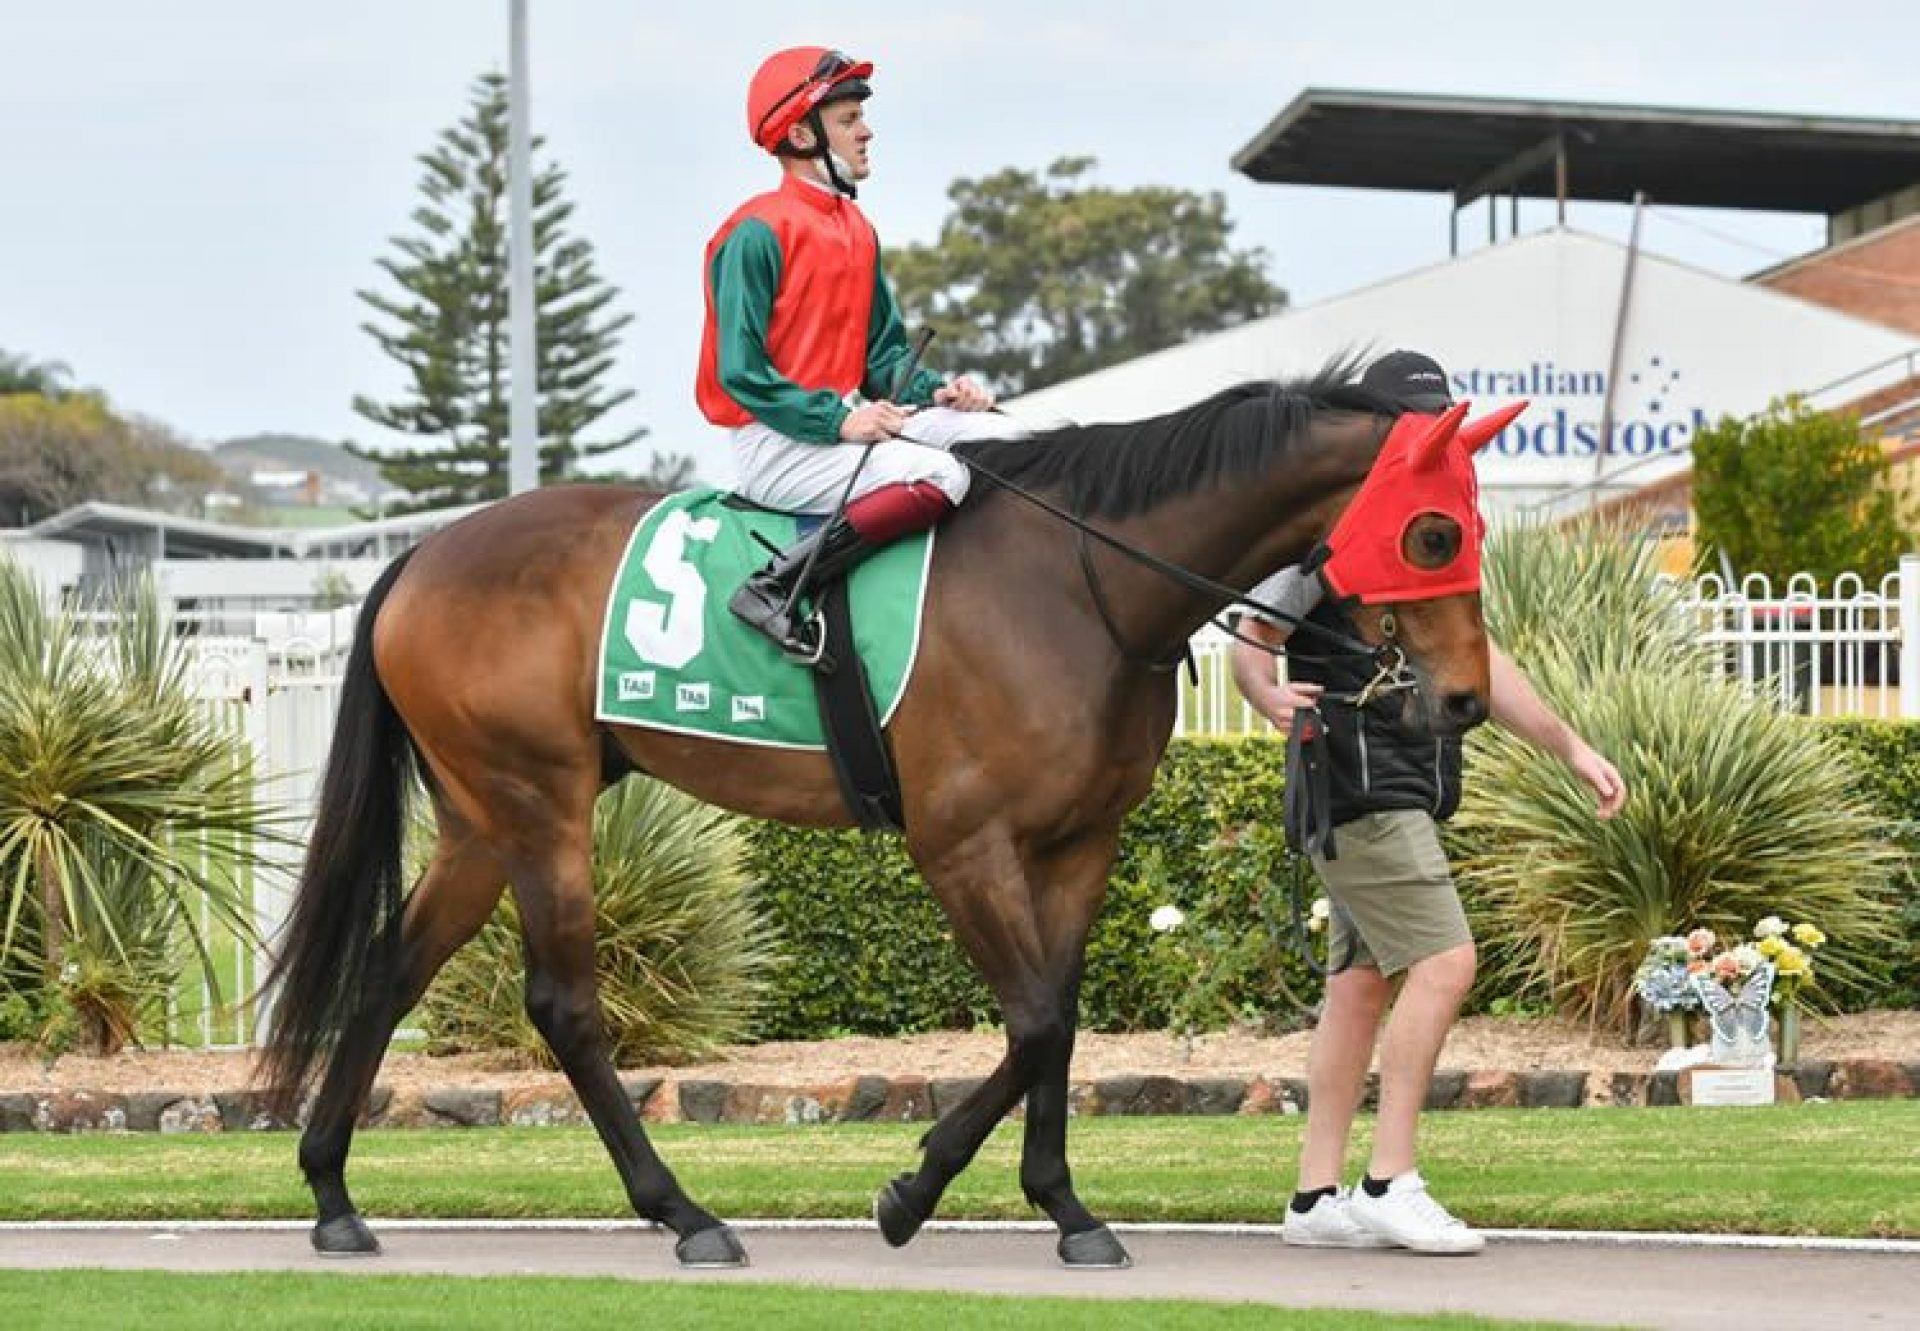 The Denzel (Adelaide) after winning at Wyong